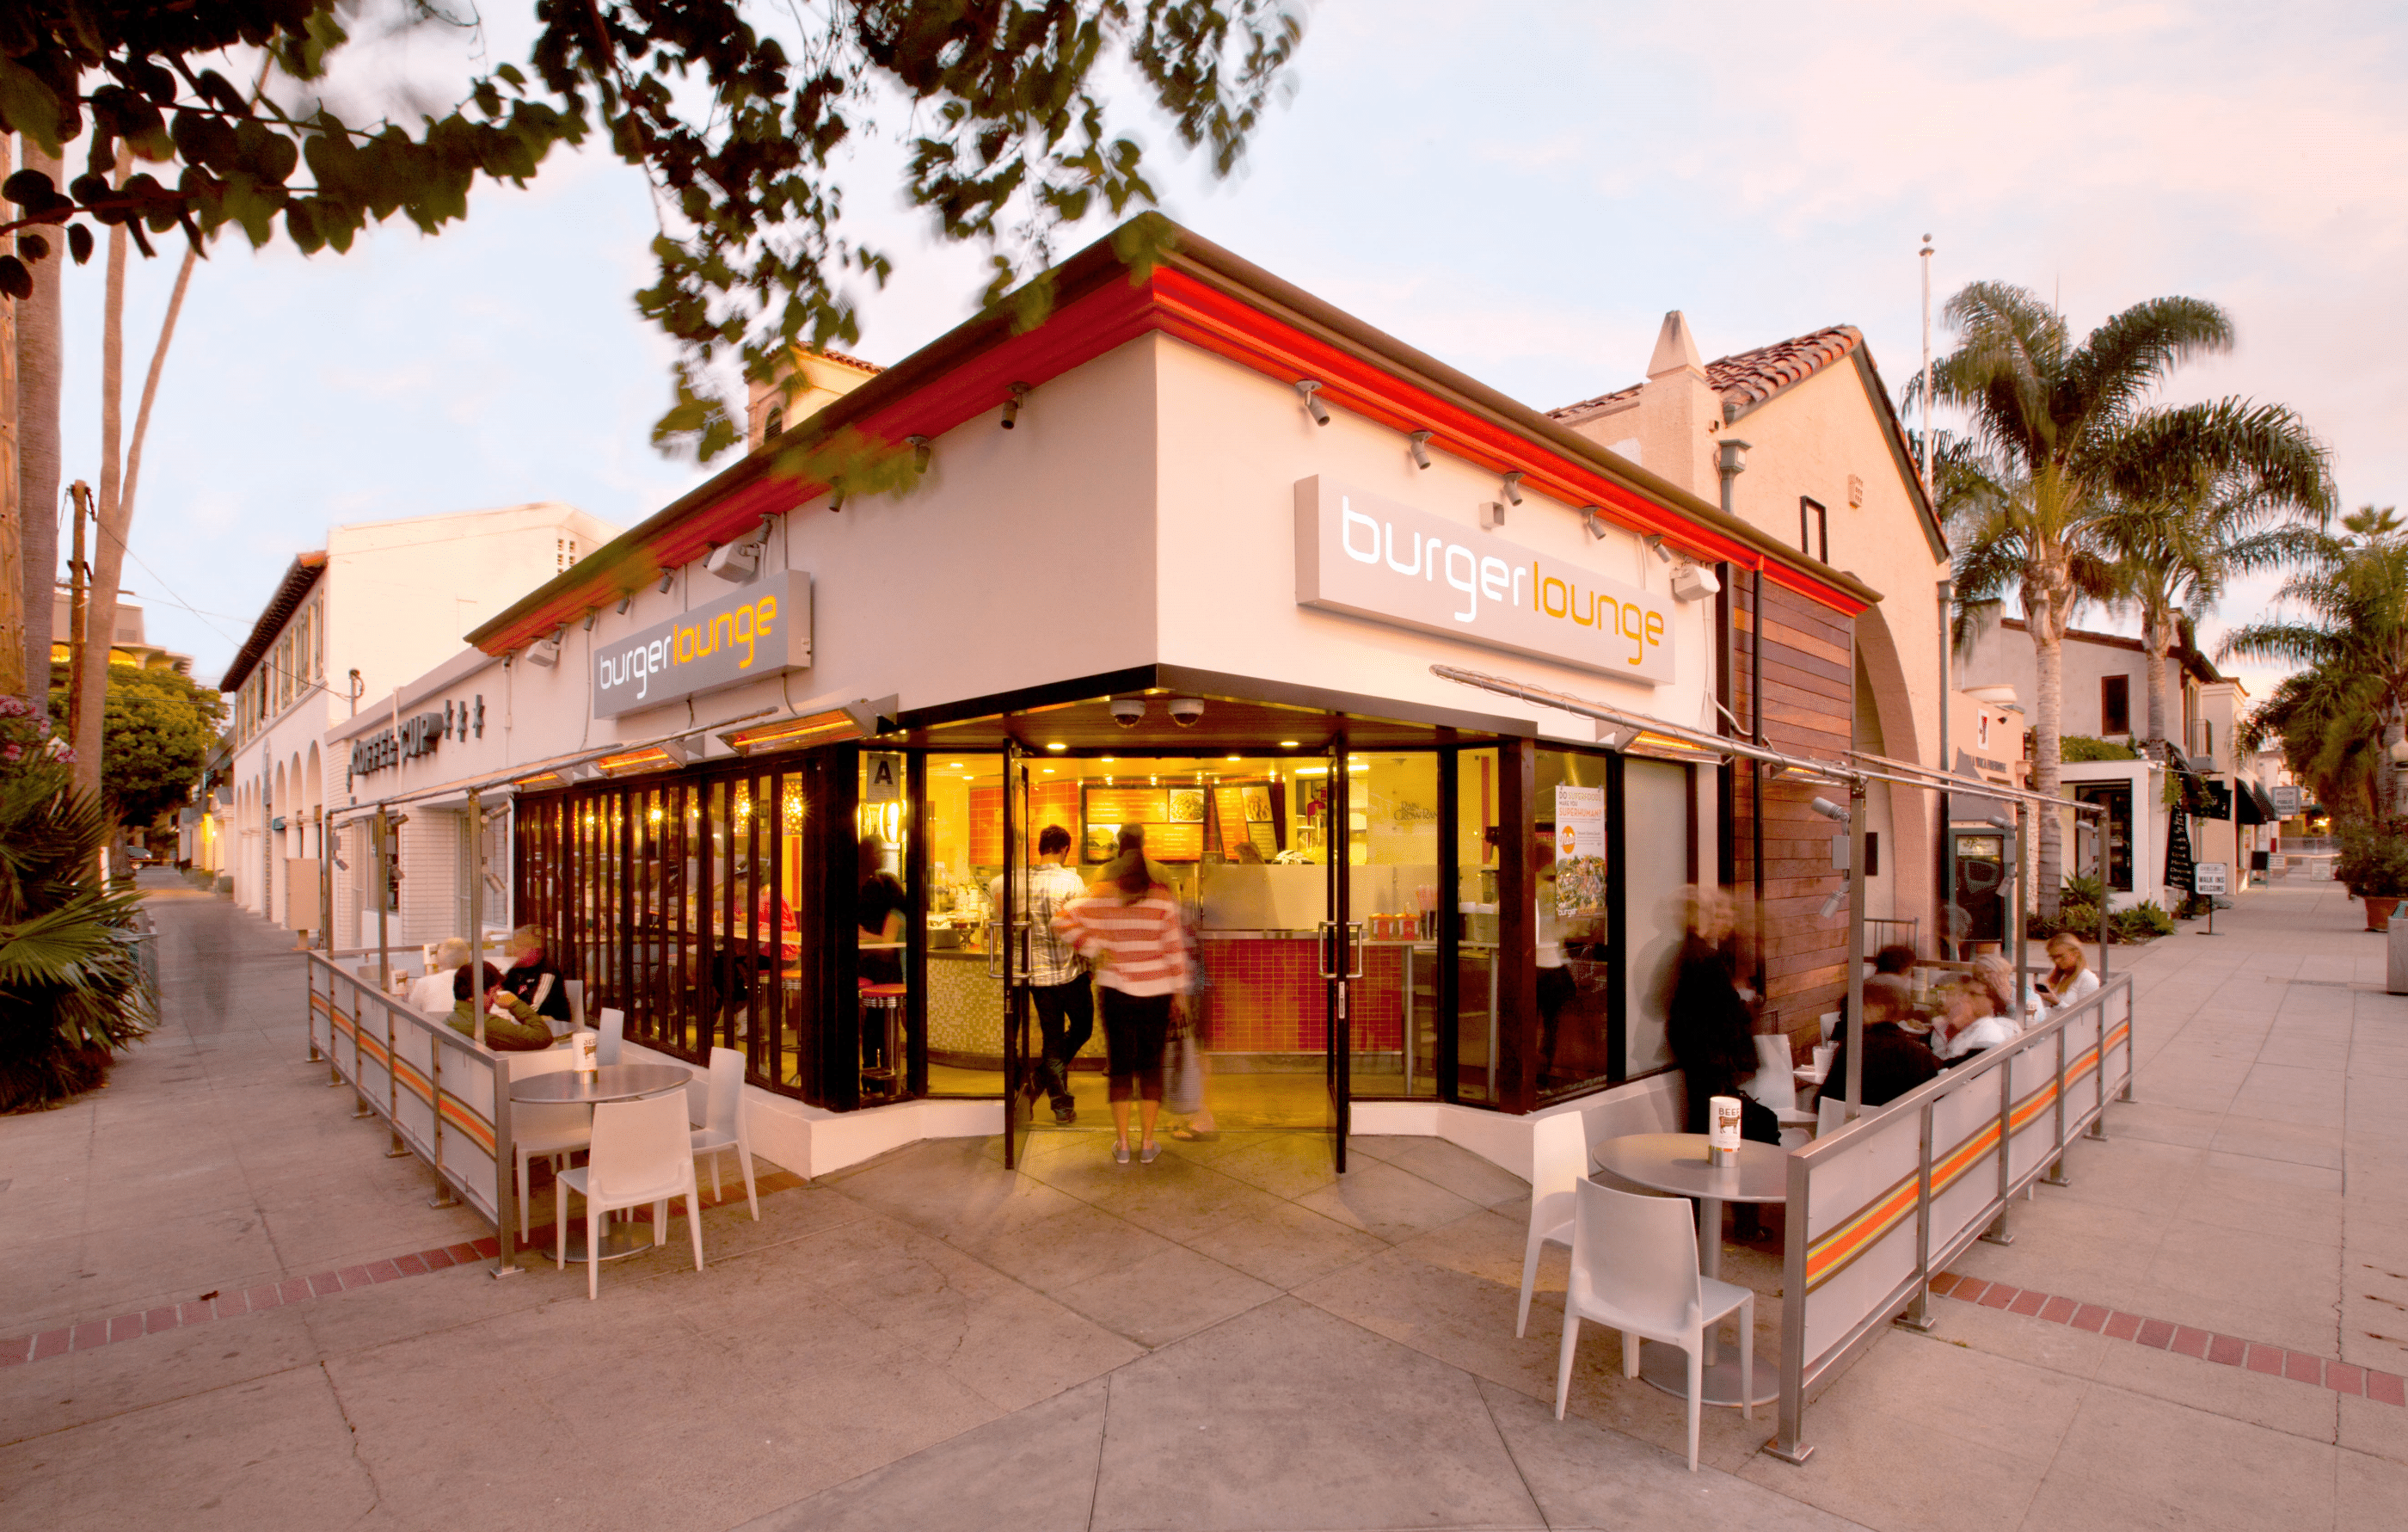 The exterior of the Burger Lounge in La Jolla.